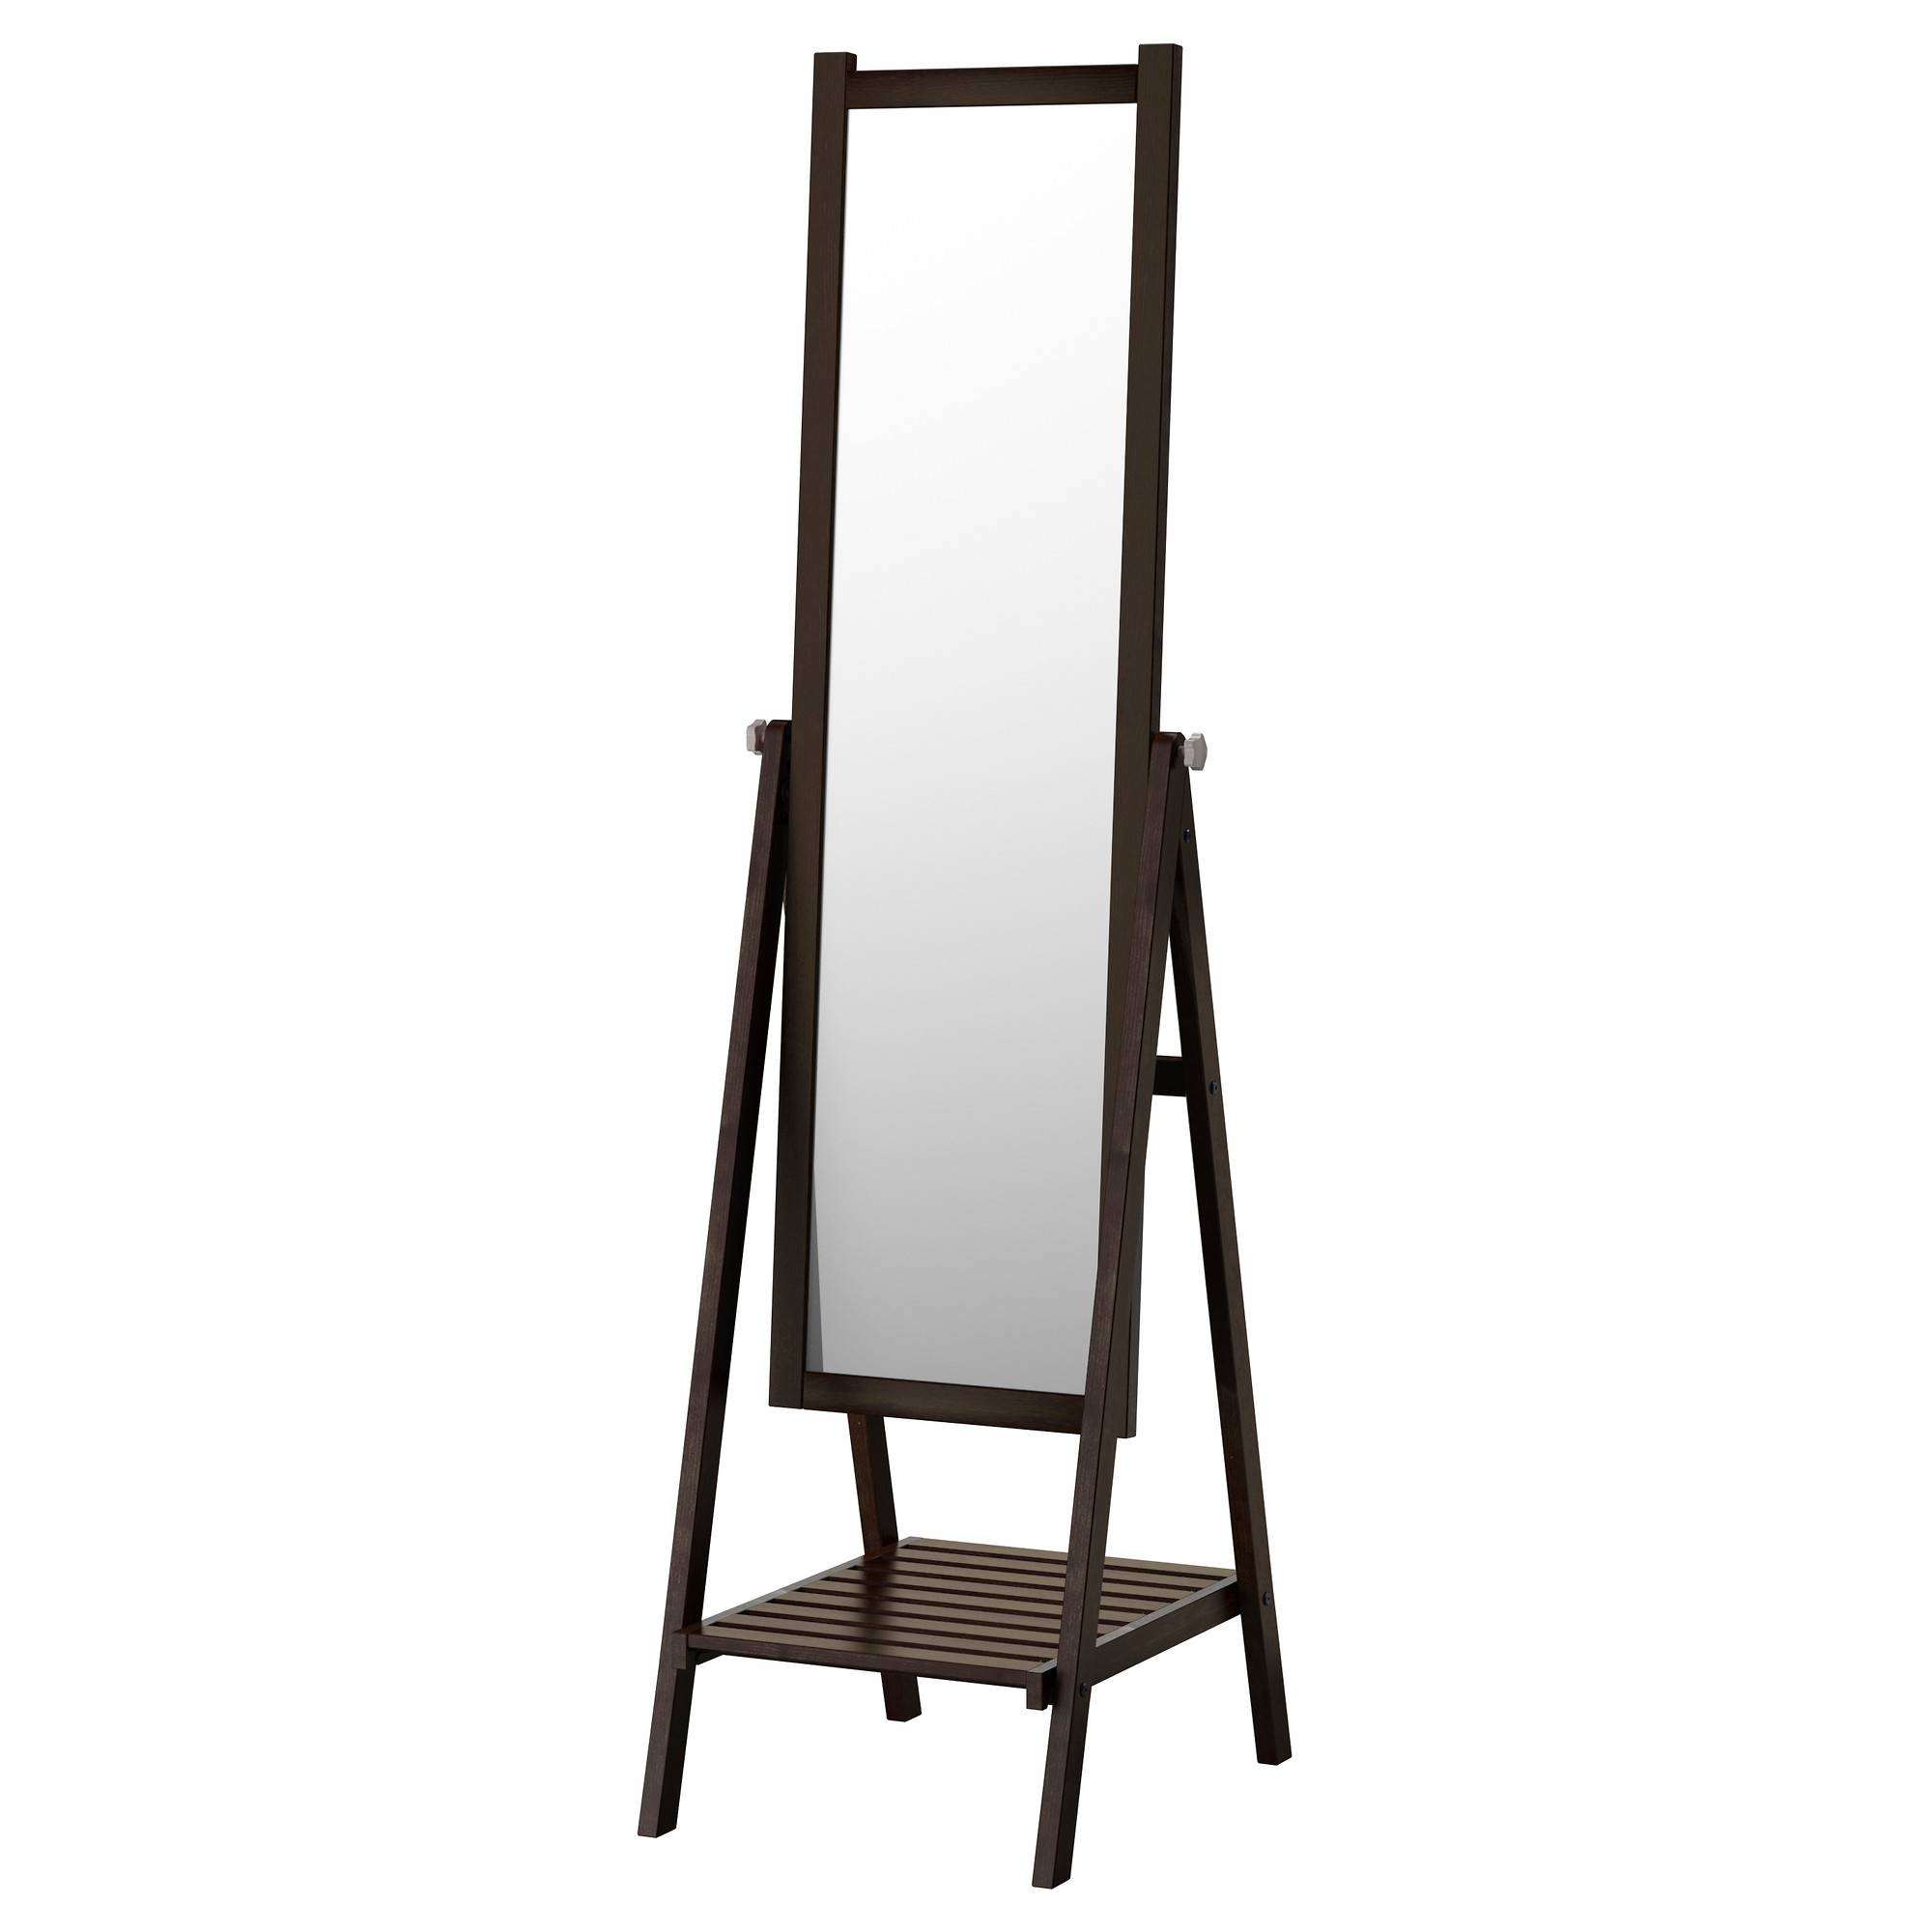 Full Length Mirrors – Ikea With Regard To Oval Freestanding Mirrors (View 18 of 25)